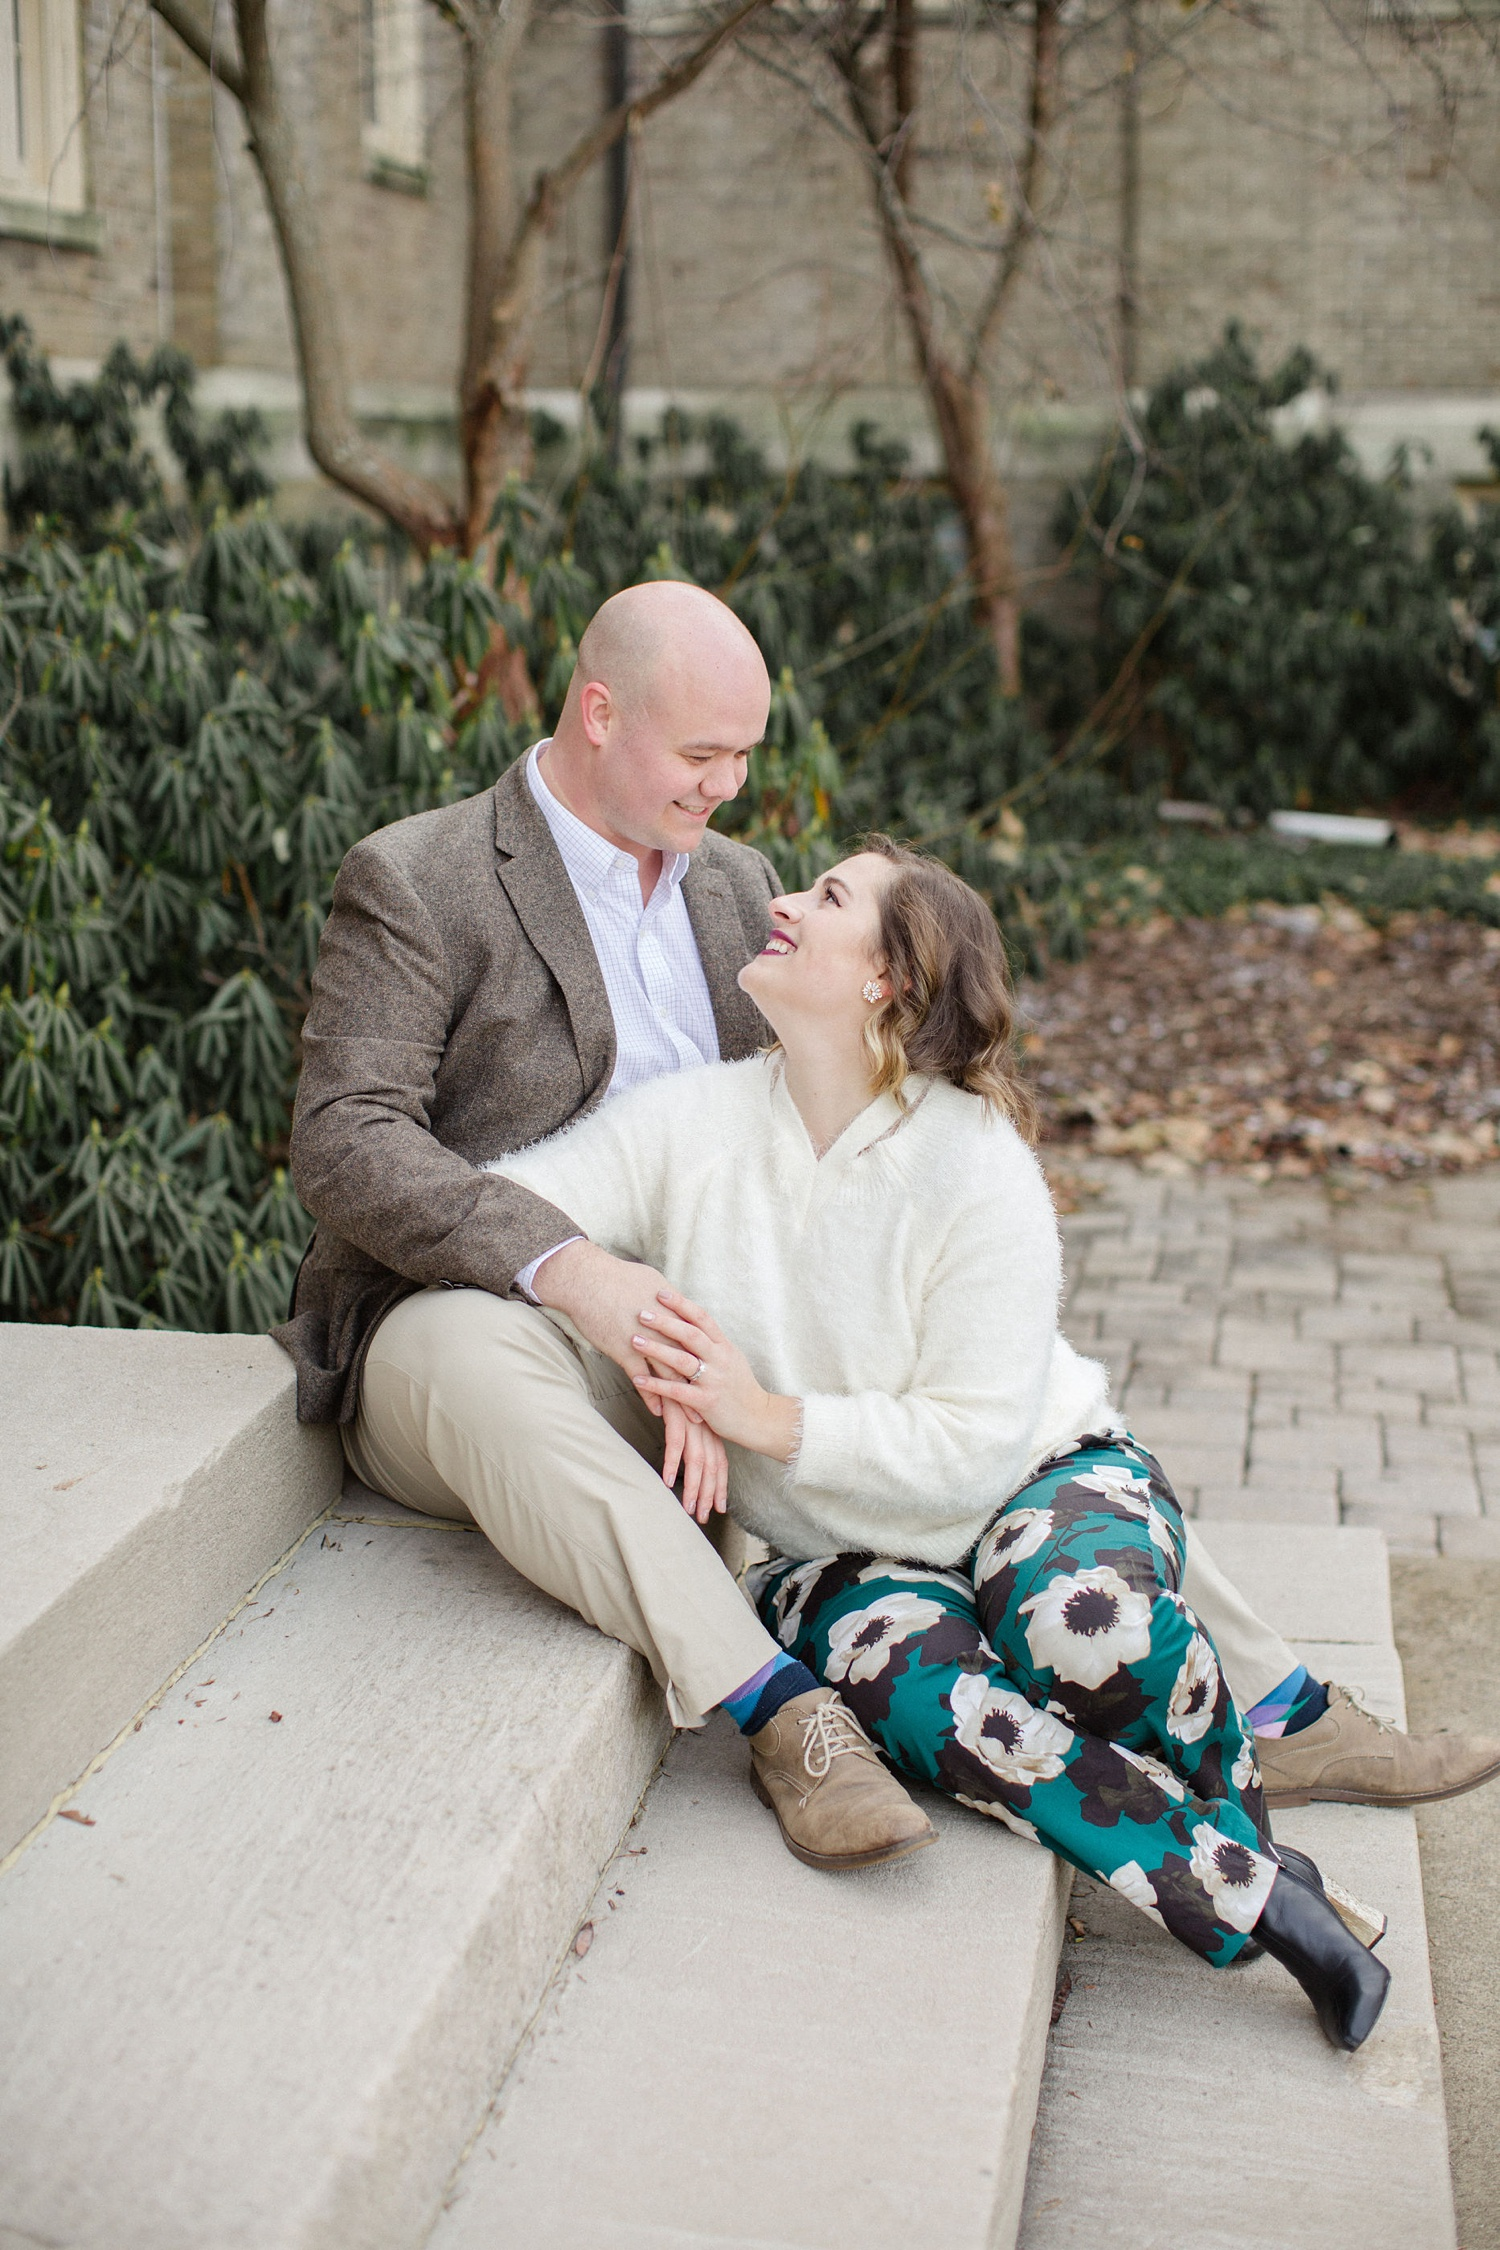 Clarks Summit PA Engagement Session Anniversary Photos_0028.jpg